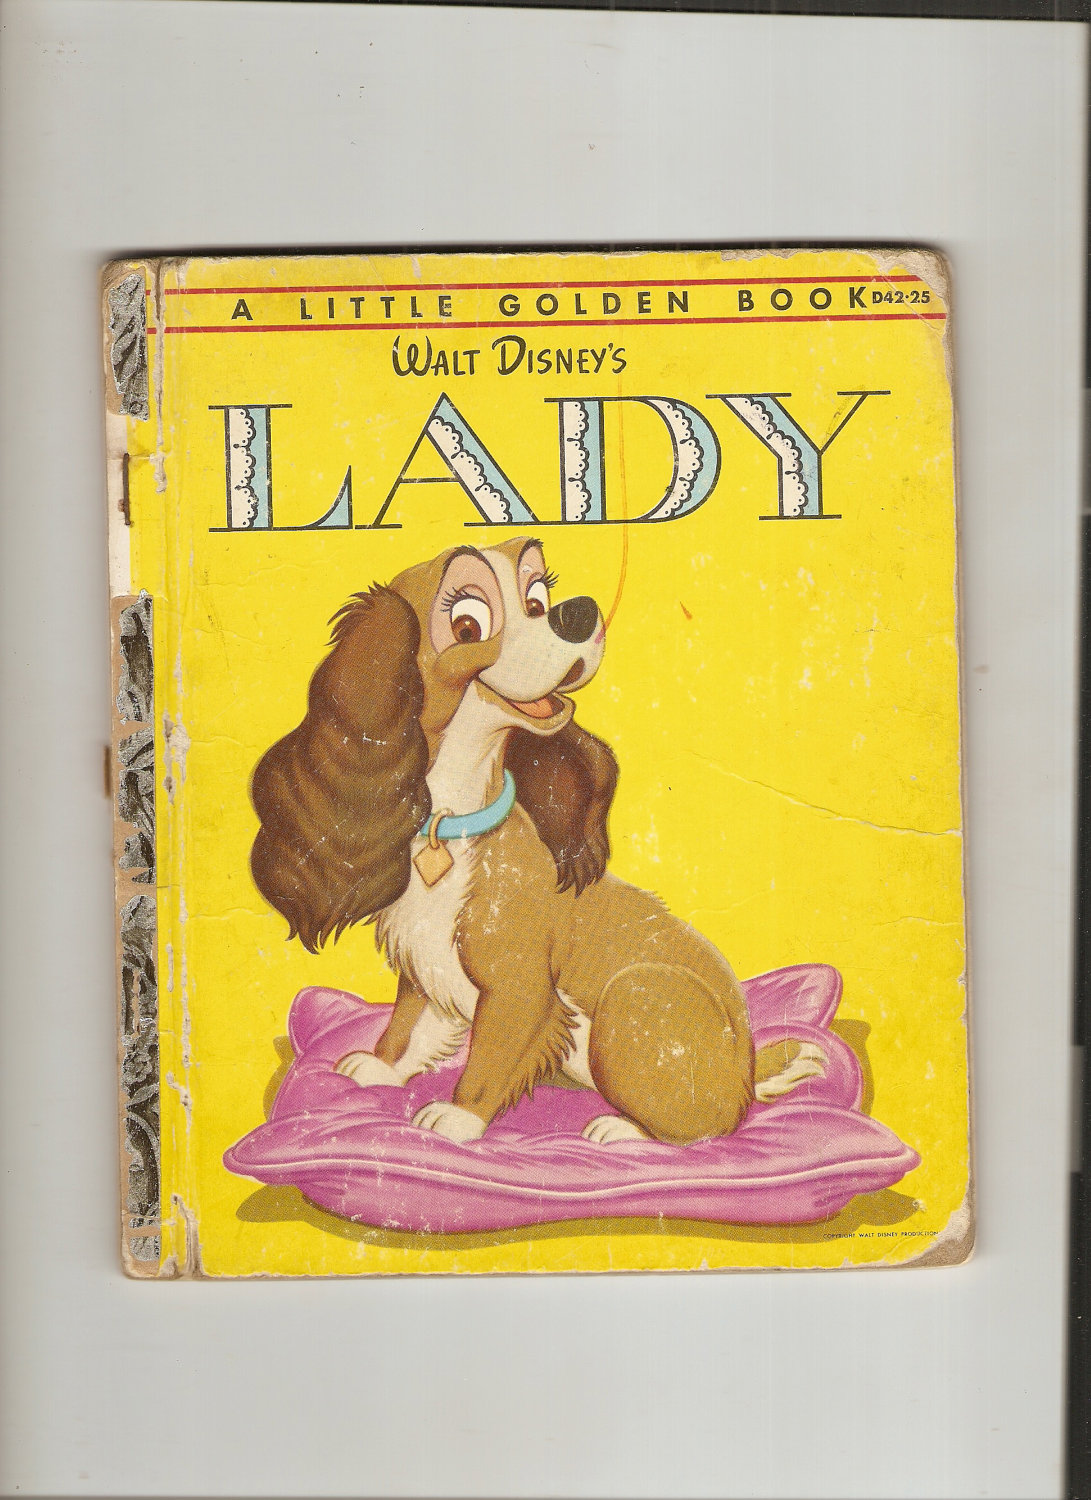 Lady and the Tramp books